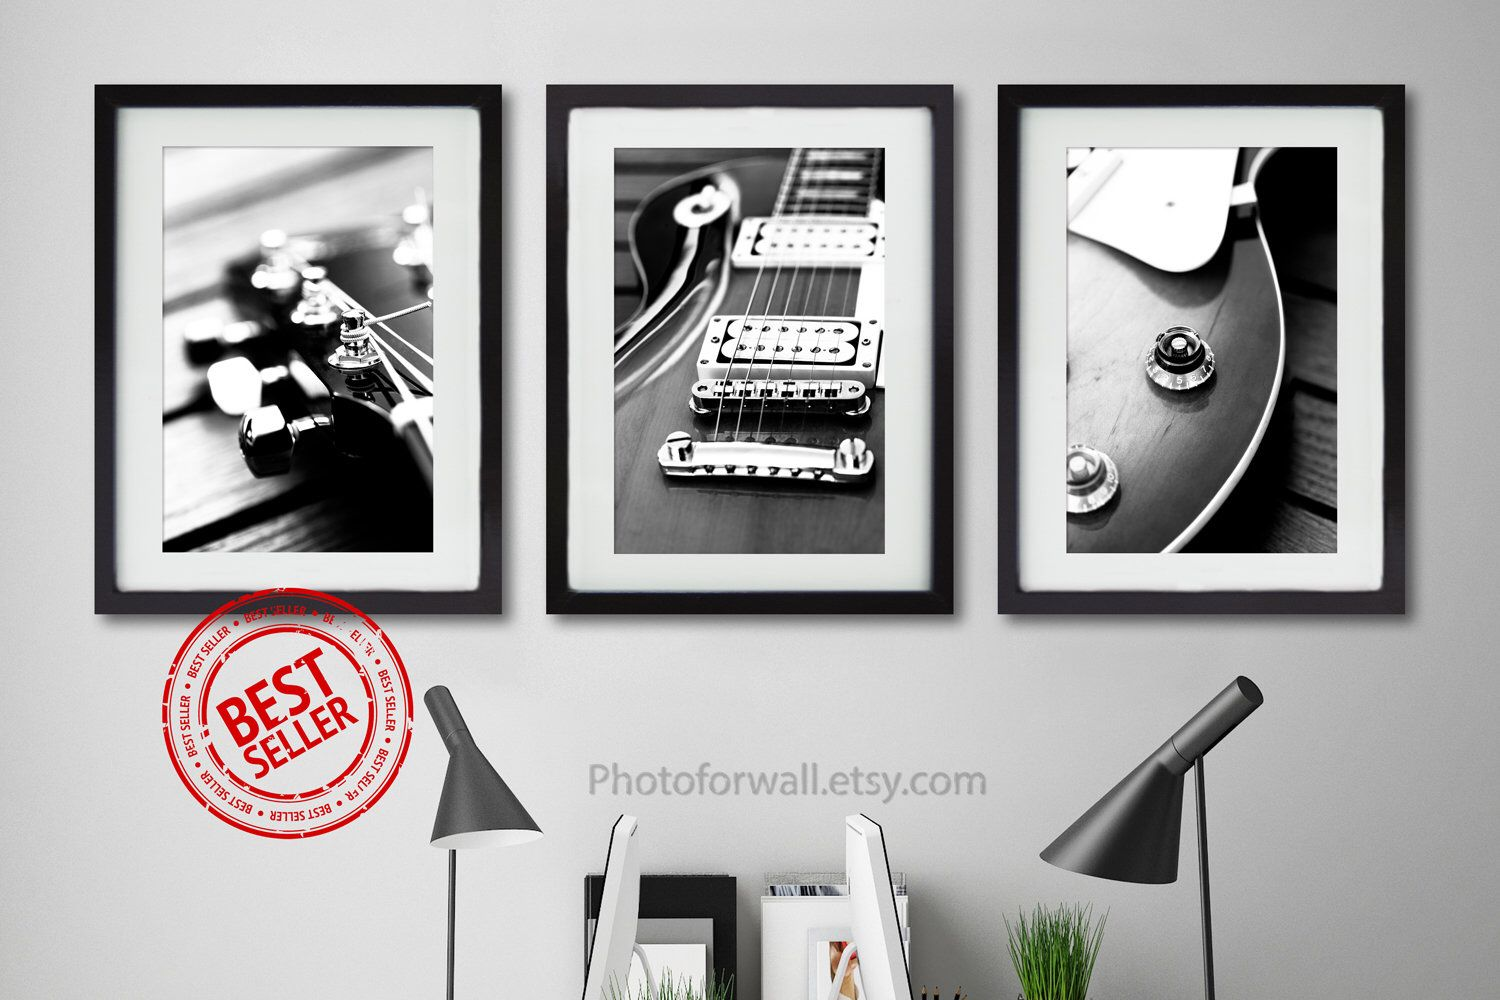 Music Wall Art Print Gift For Music Lover Guitar Music Wall Art In Black And White Photography Music Theme Office Decor Fathers Gift Guitar Wall Art Music Wall Art Guitar Wall